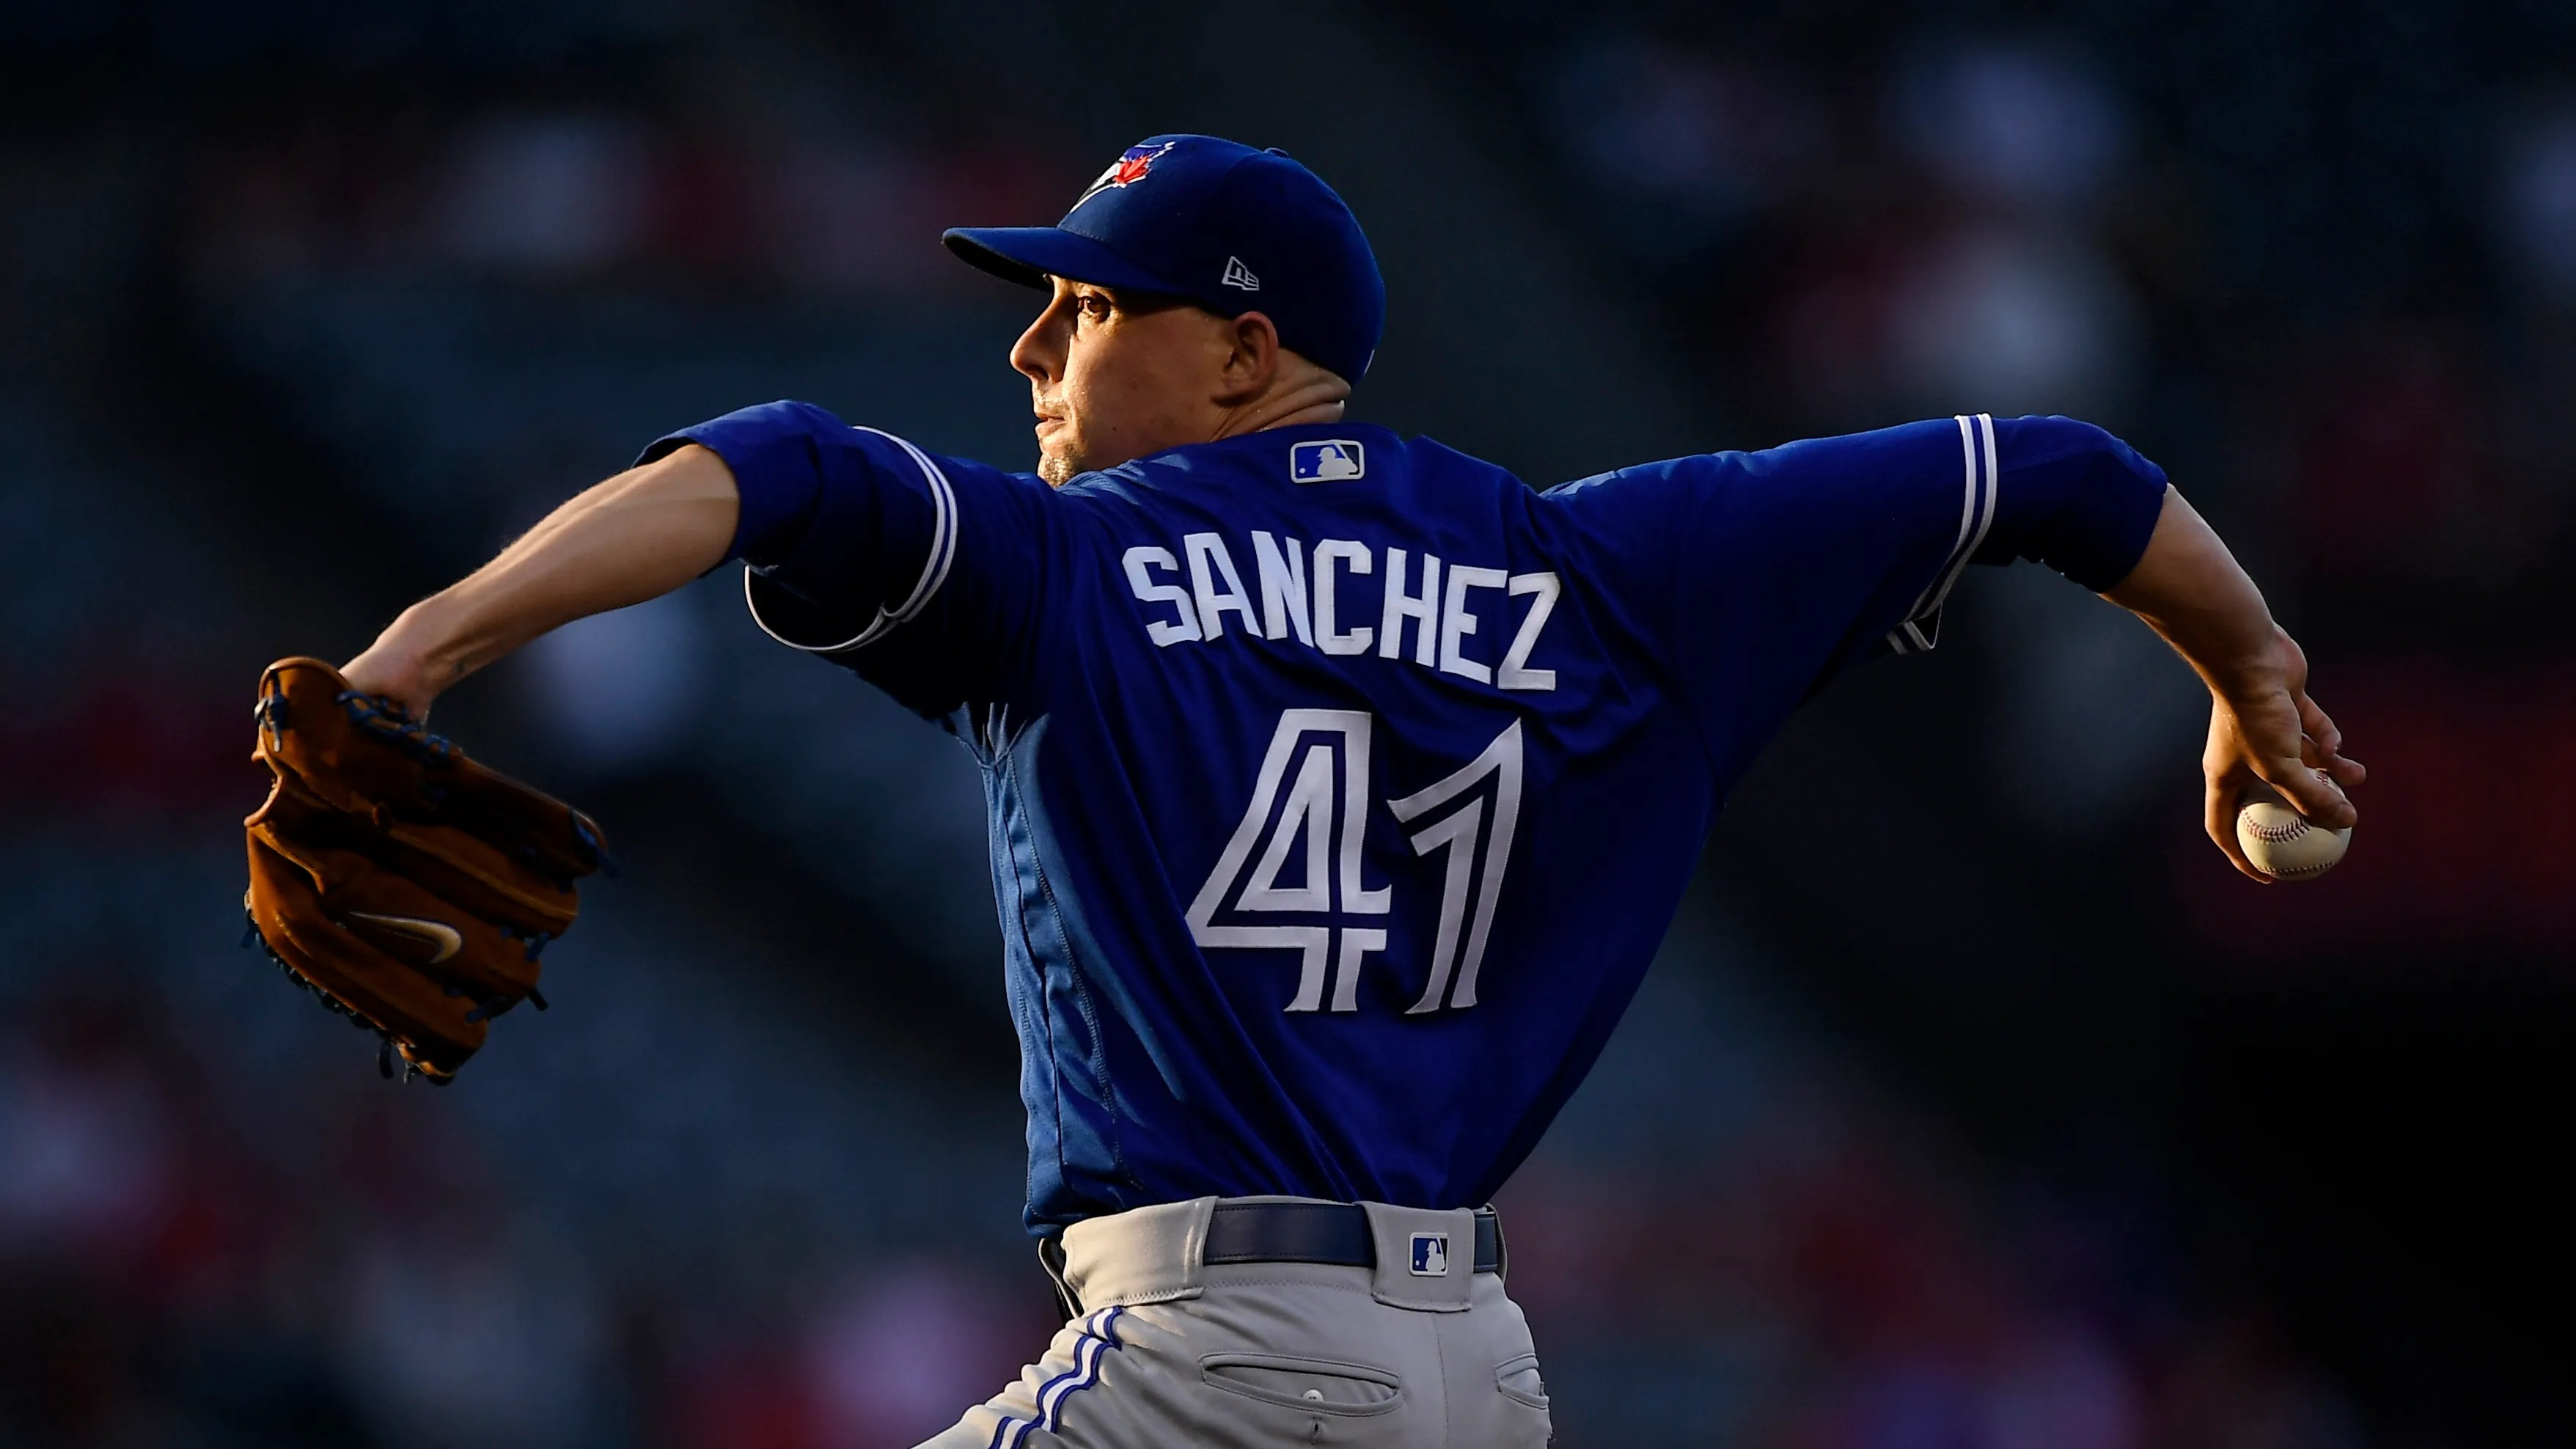 Aaron Sanchez Blue Jays